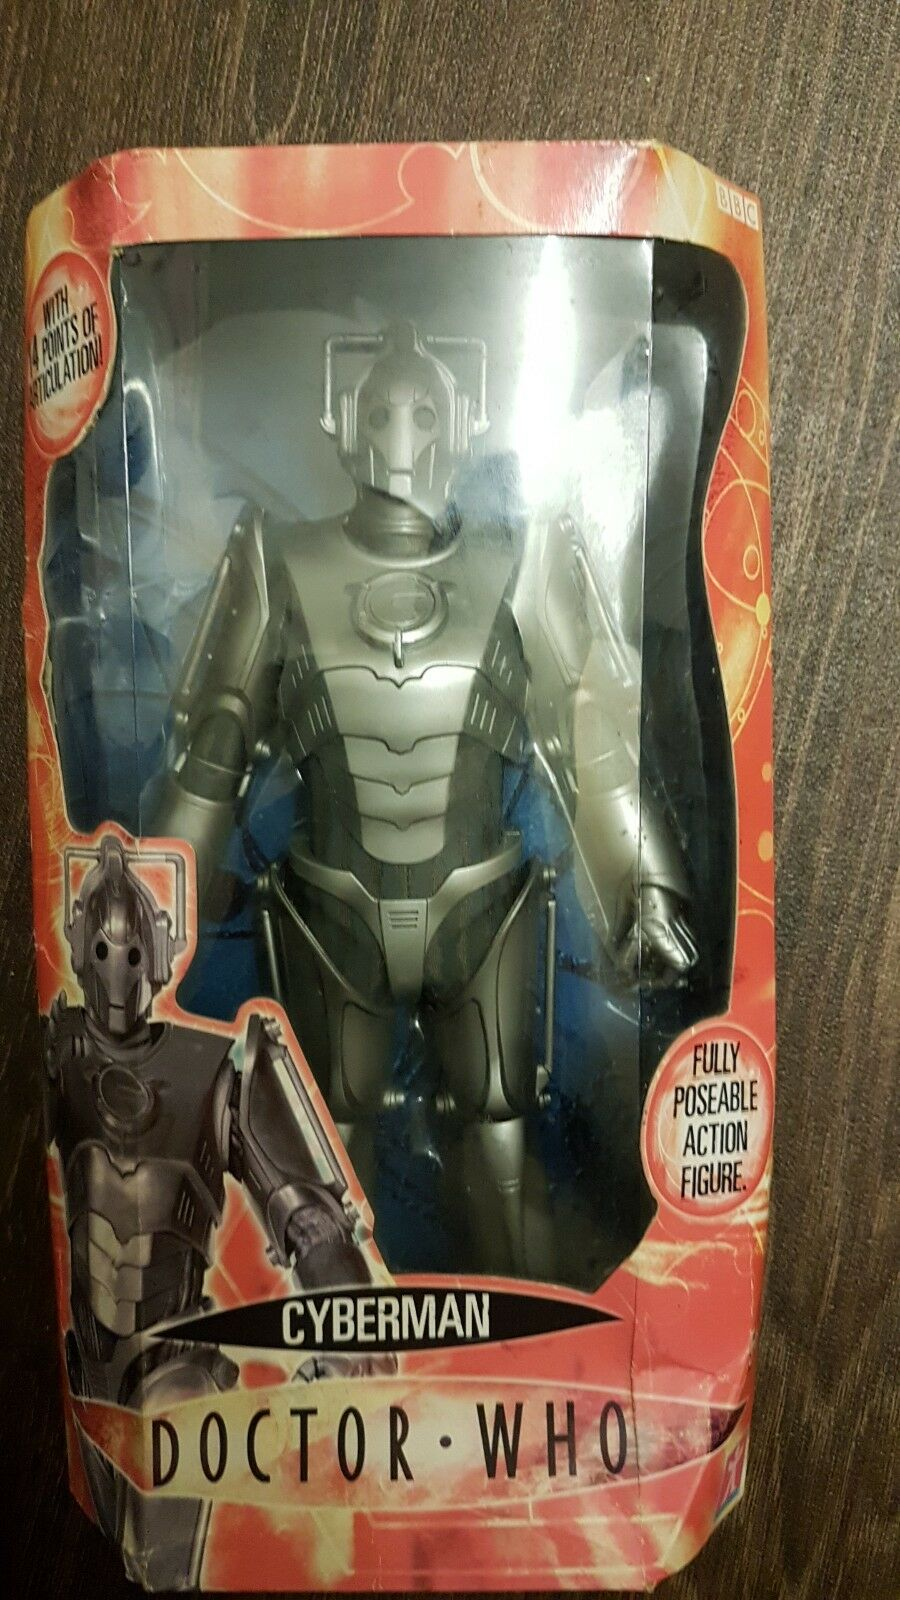 Dr Who Series 2 Large 30cm 30cm 30cm Action Figure Cyberman 14 PoA New In Box doctor who 435836